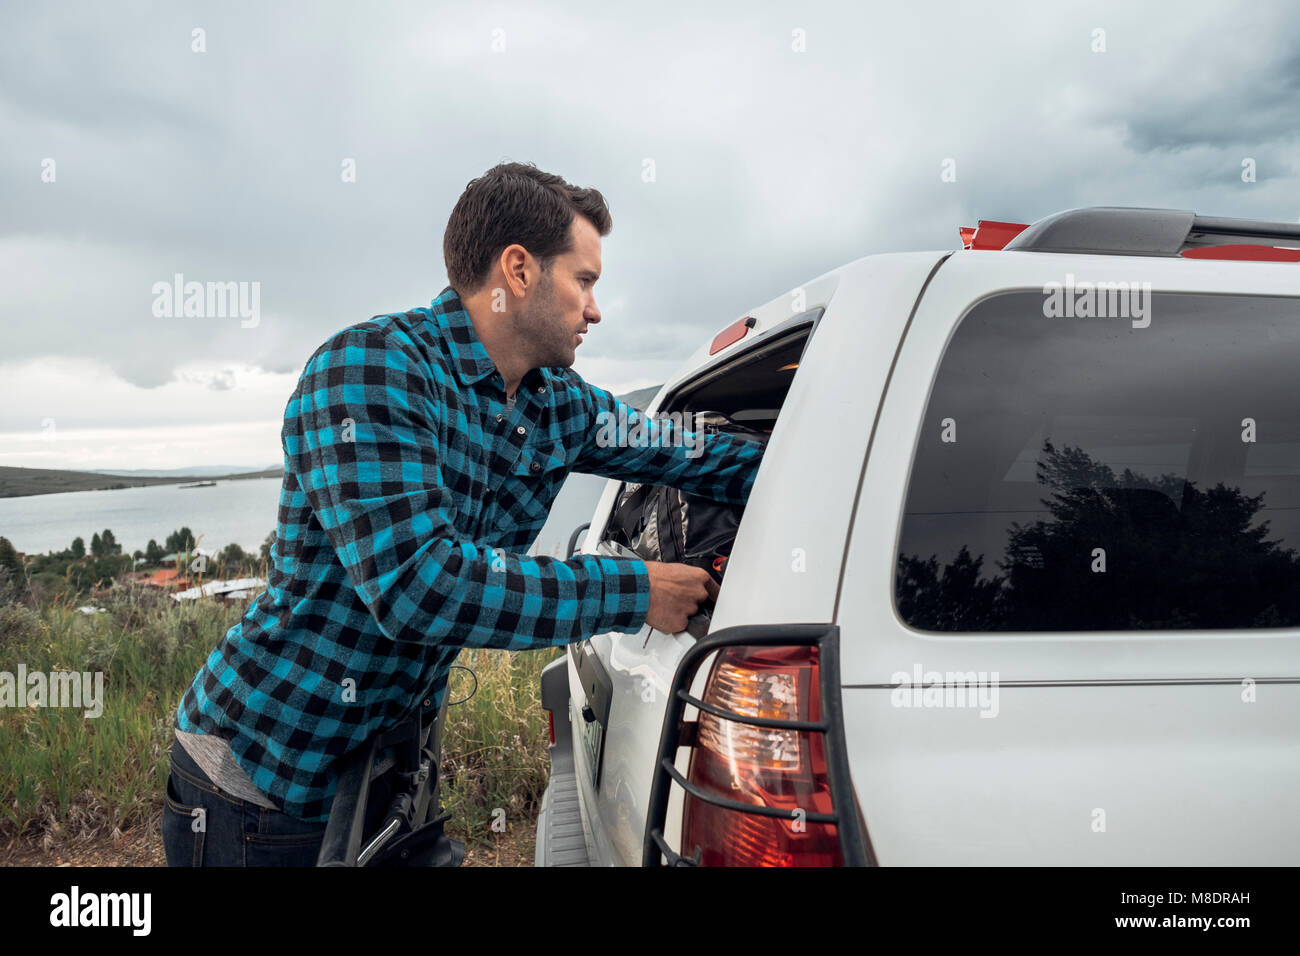 Mid adult man reaching into window of parked car, Silverthorne, Colorado, USA Stock Photo